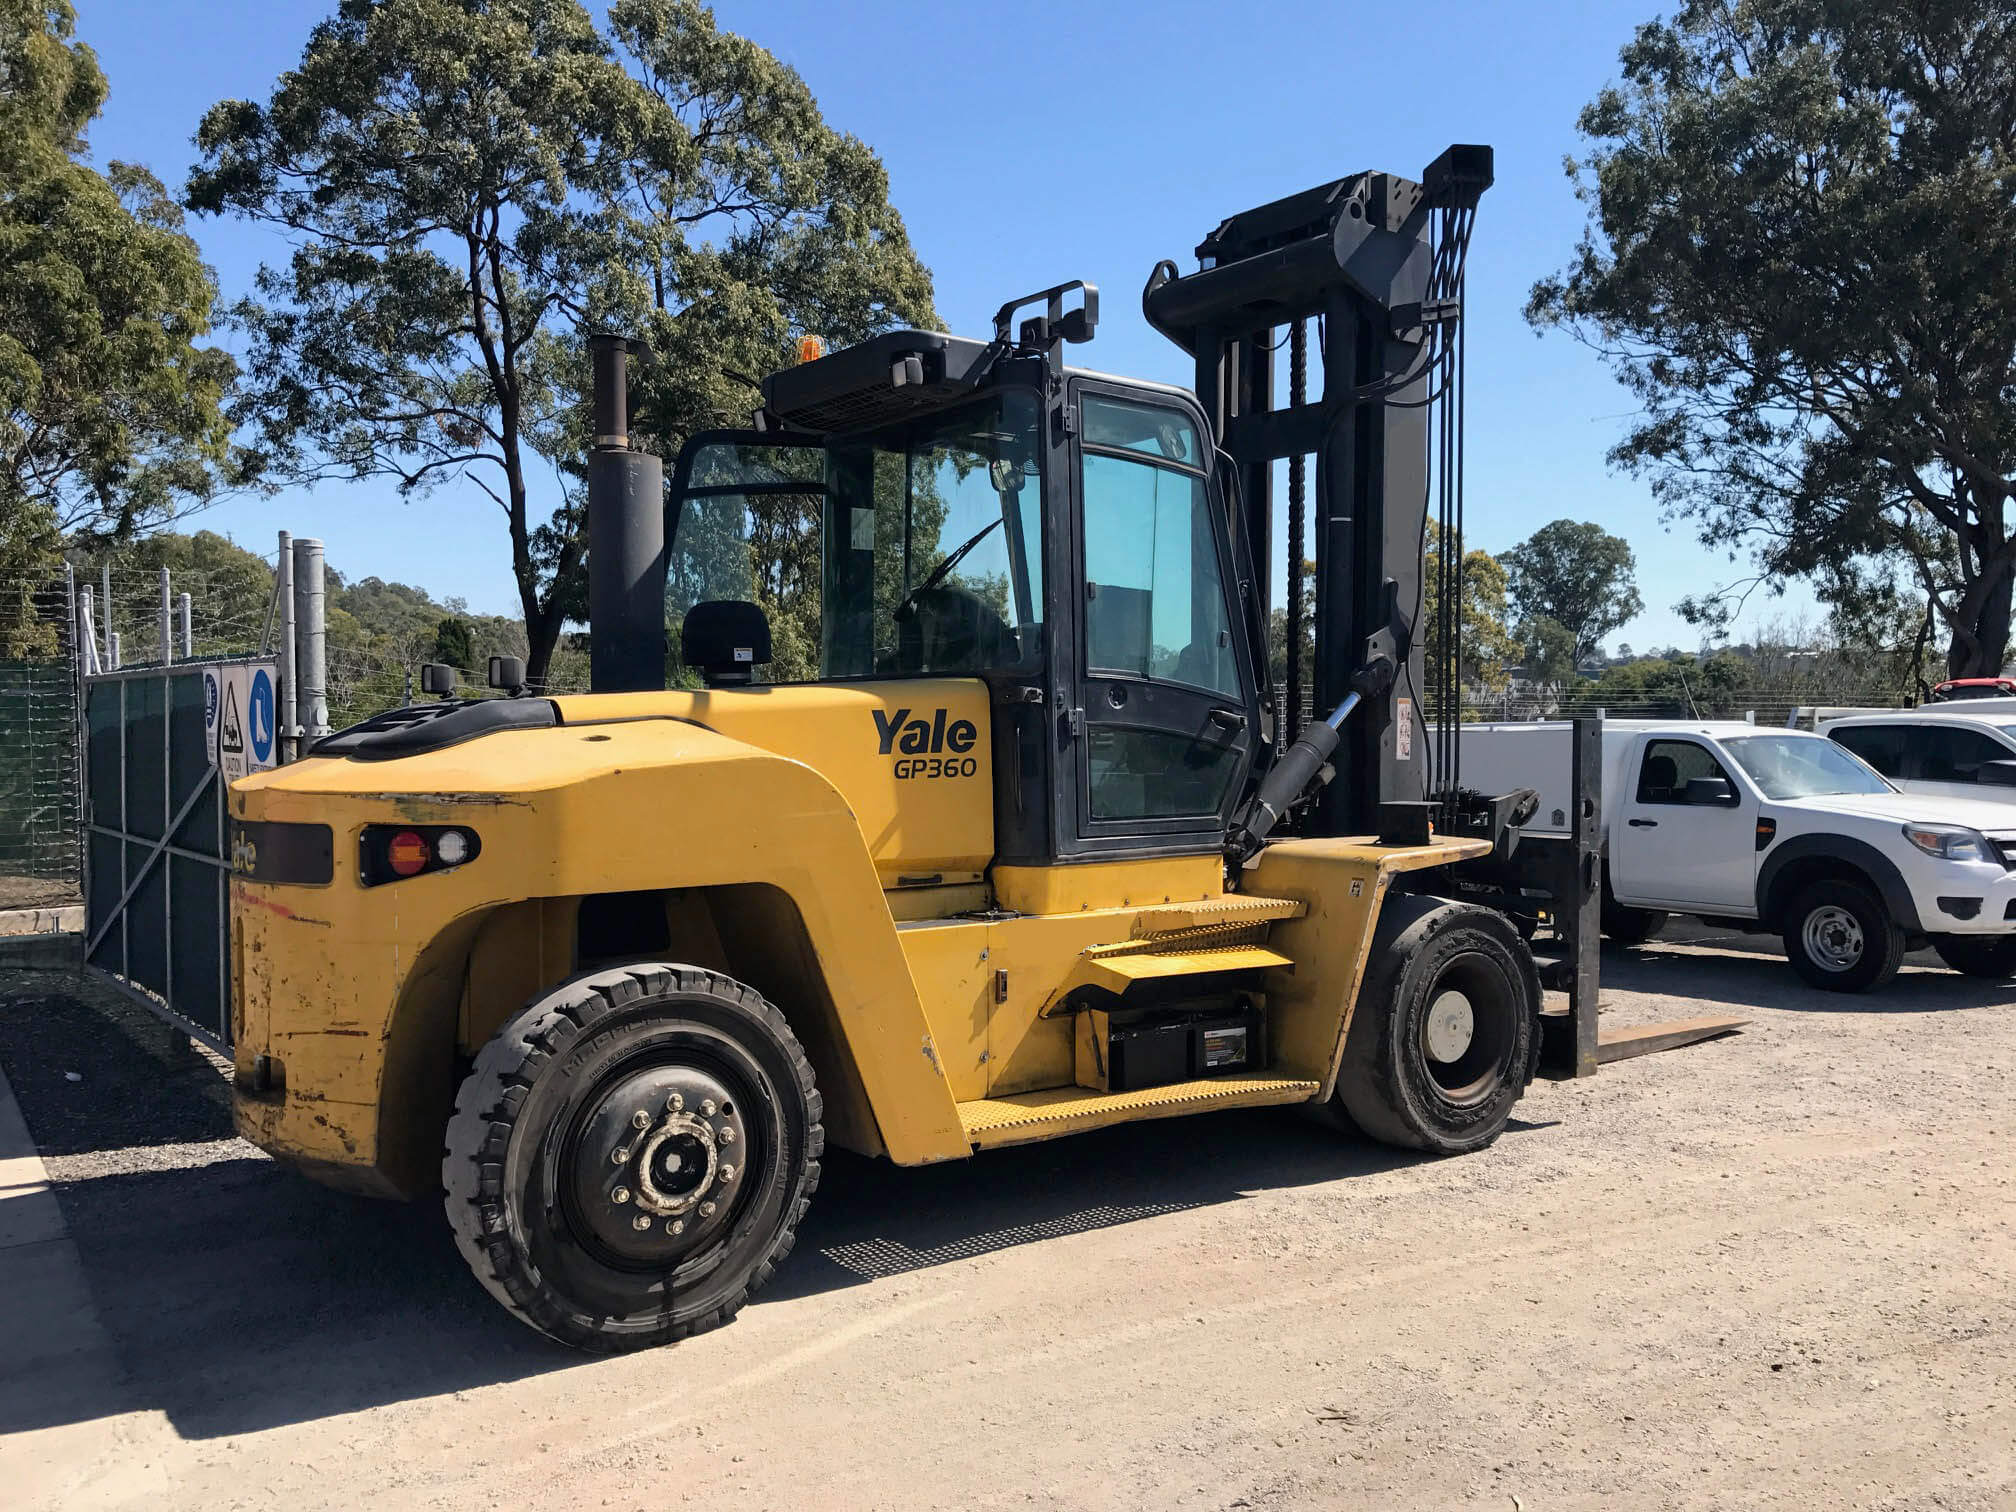 Select location type business with dock or forklift business without - Yale Gdp360eb